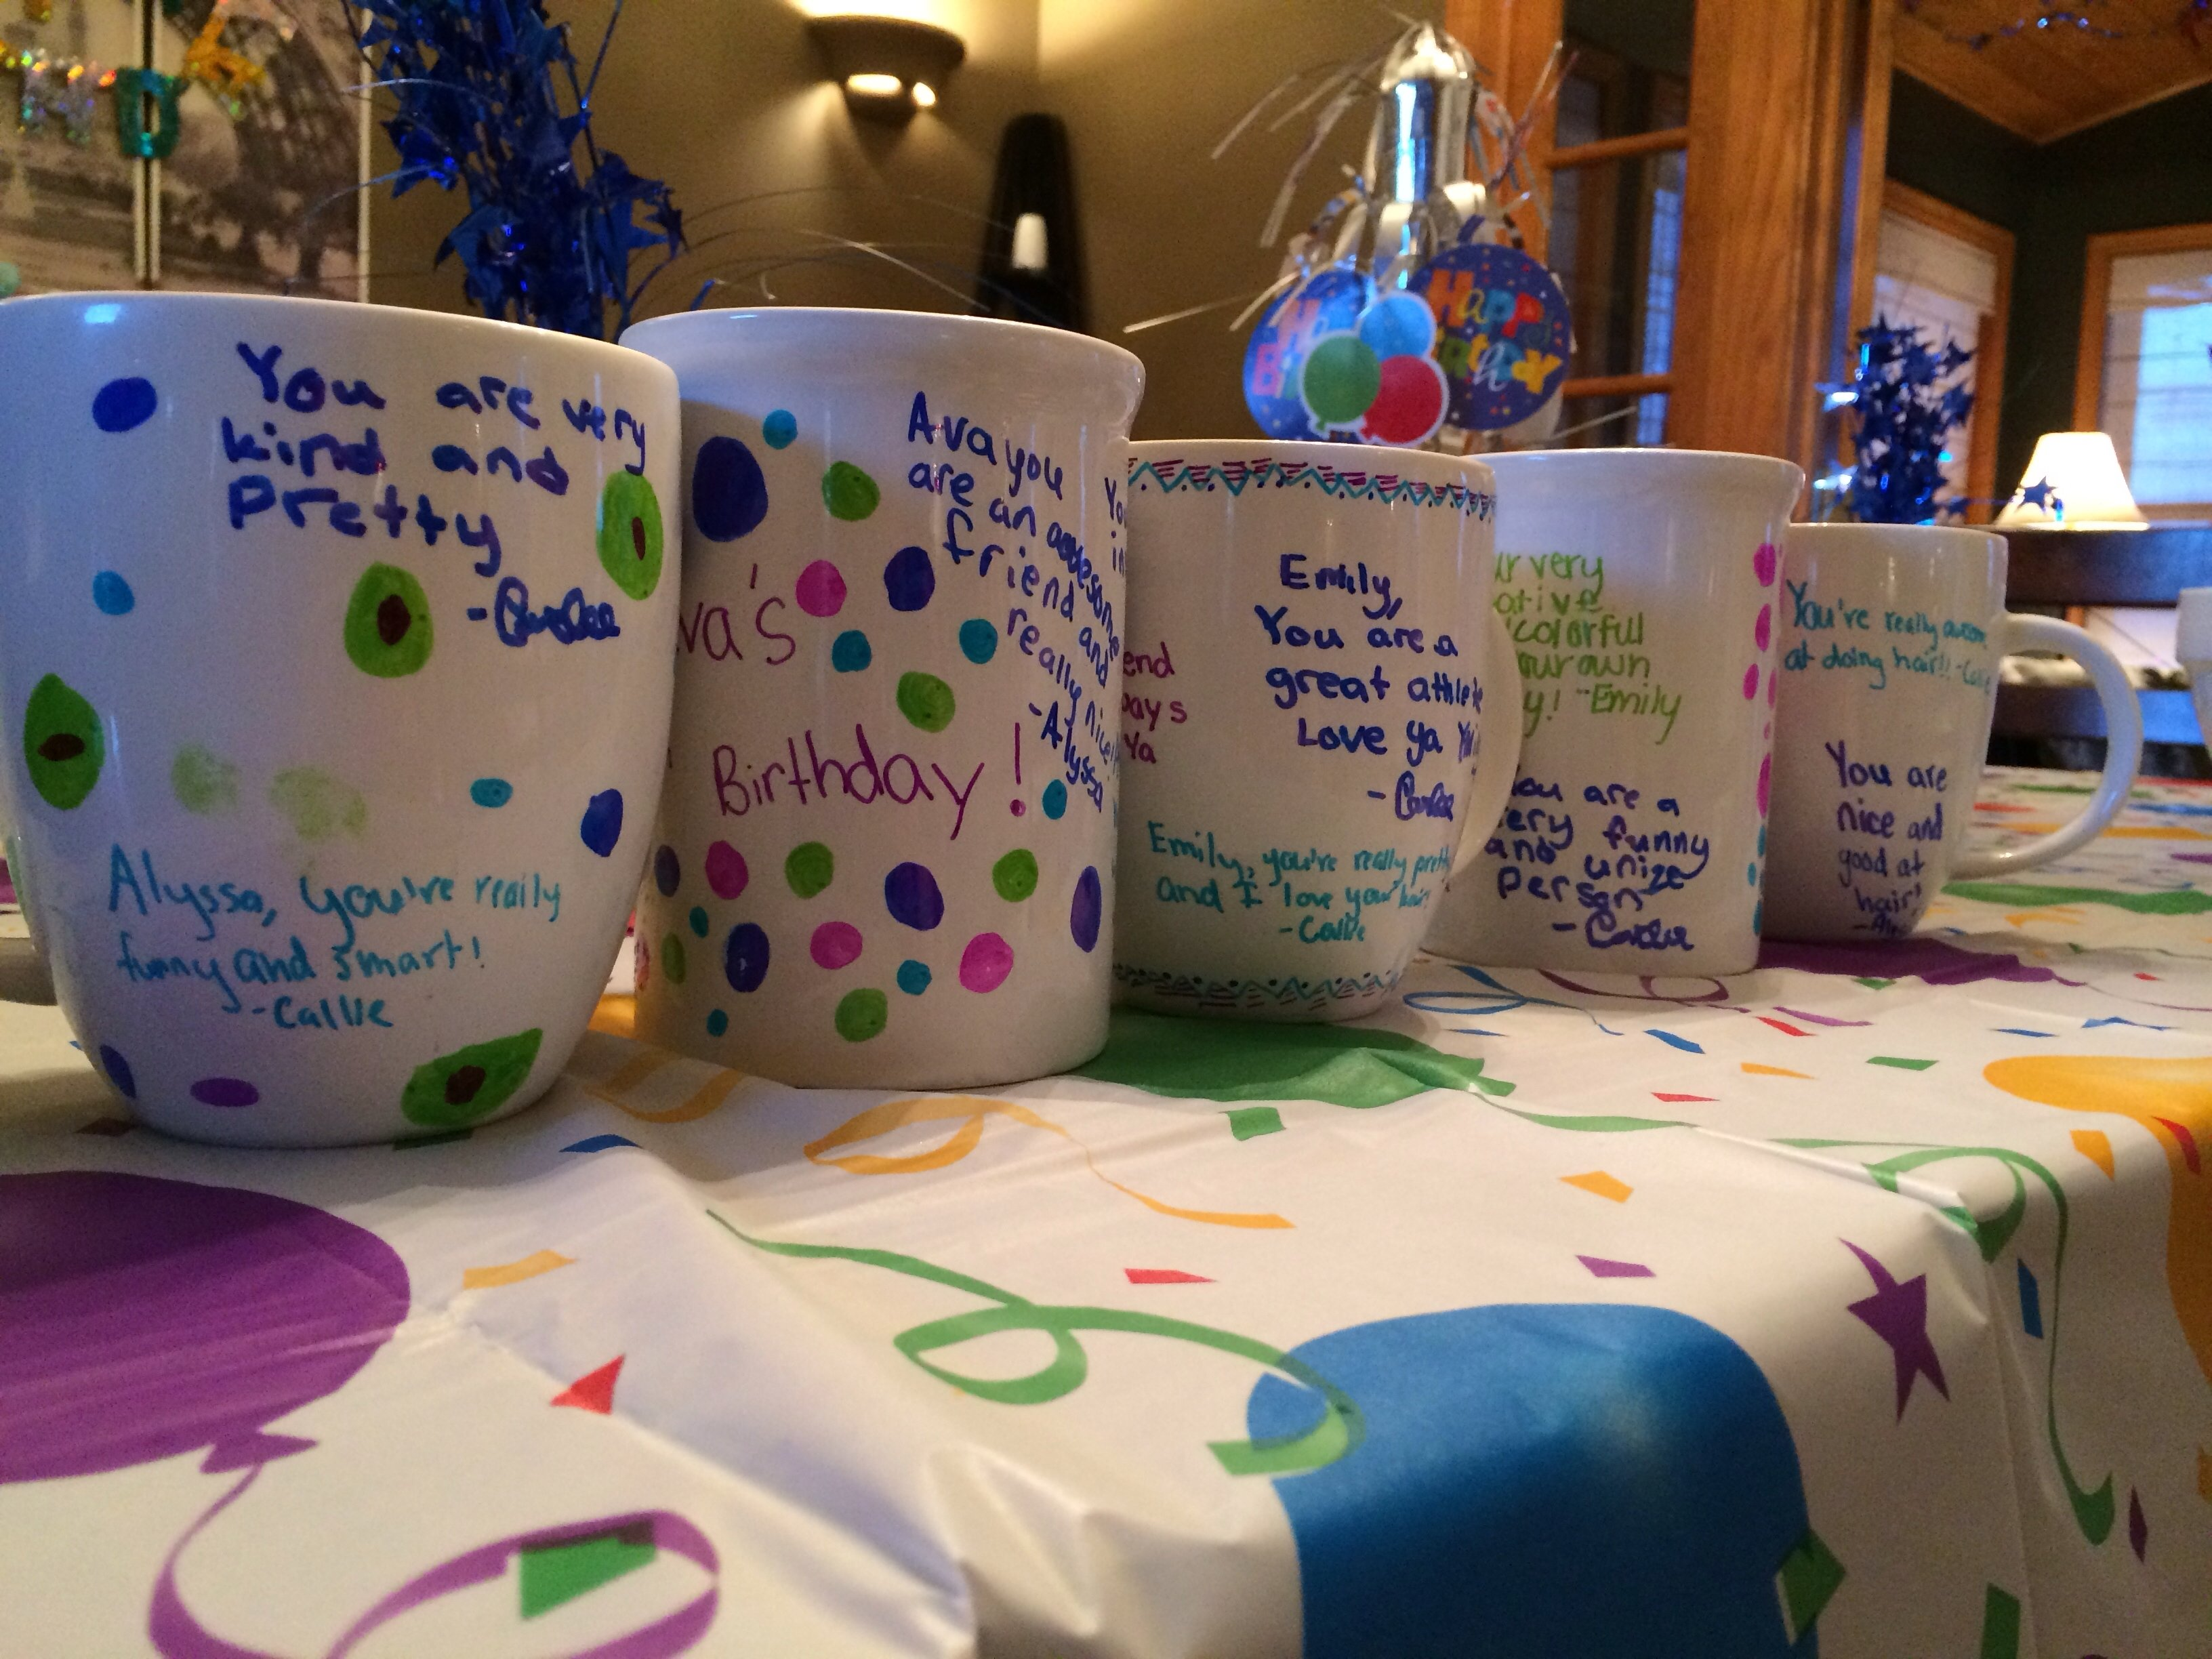 10 Gorgeous 12 Year Old Girl Birthday Party Ideas slumber party invitation ideas homemade sharpie mugs birthday fun 2020